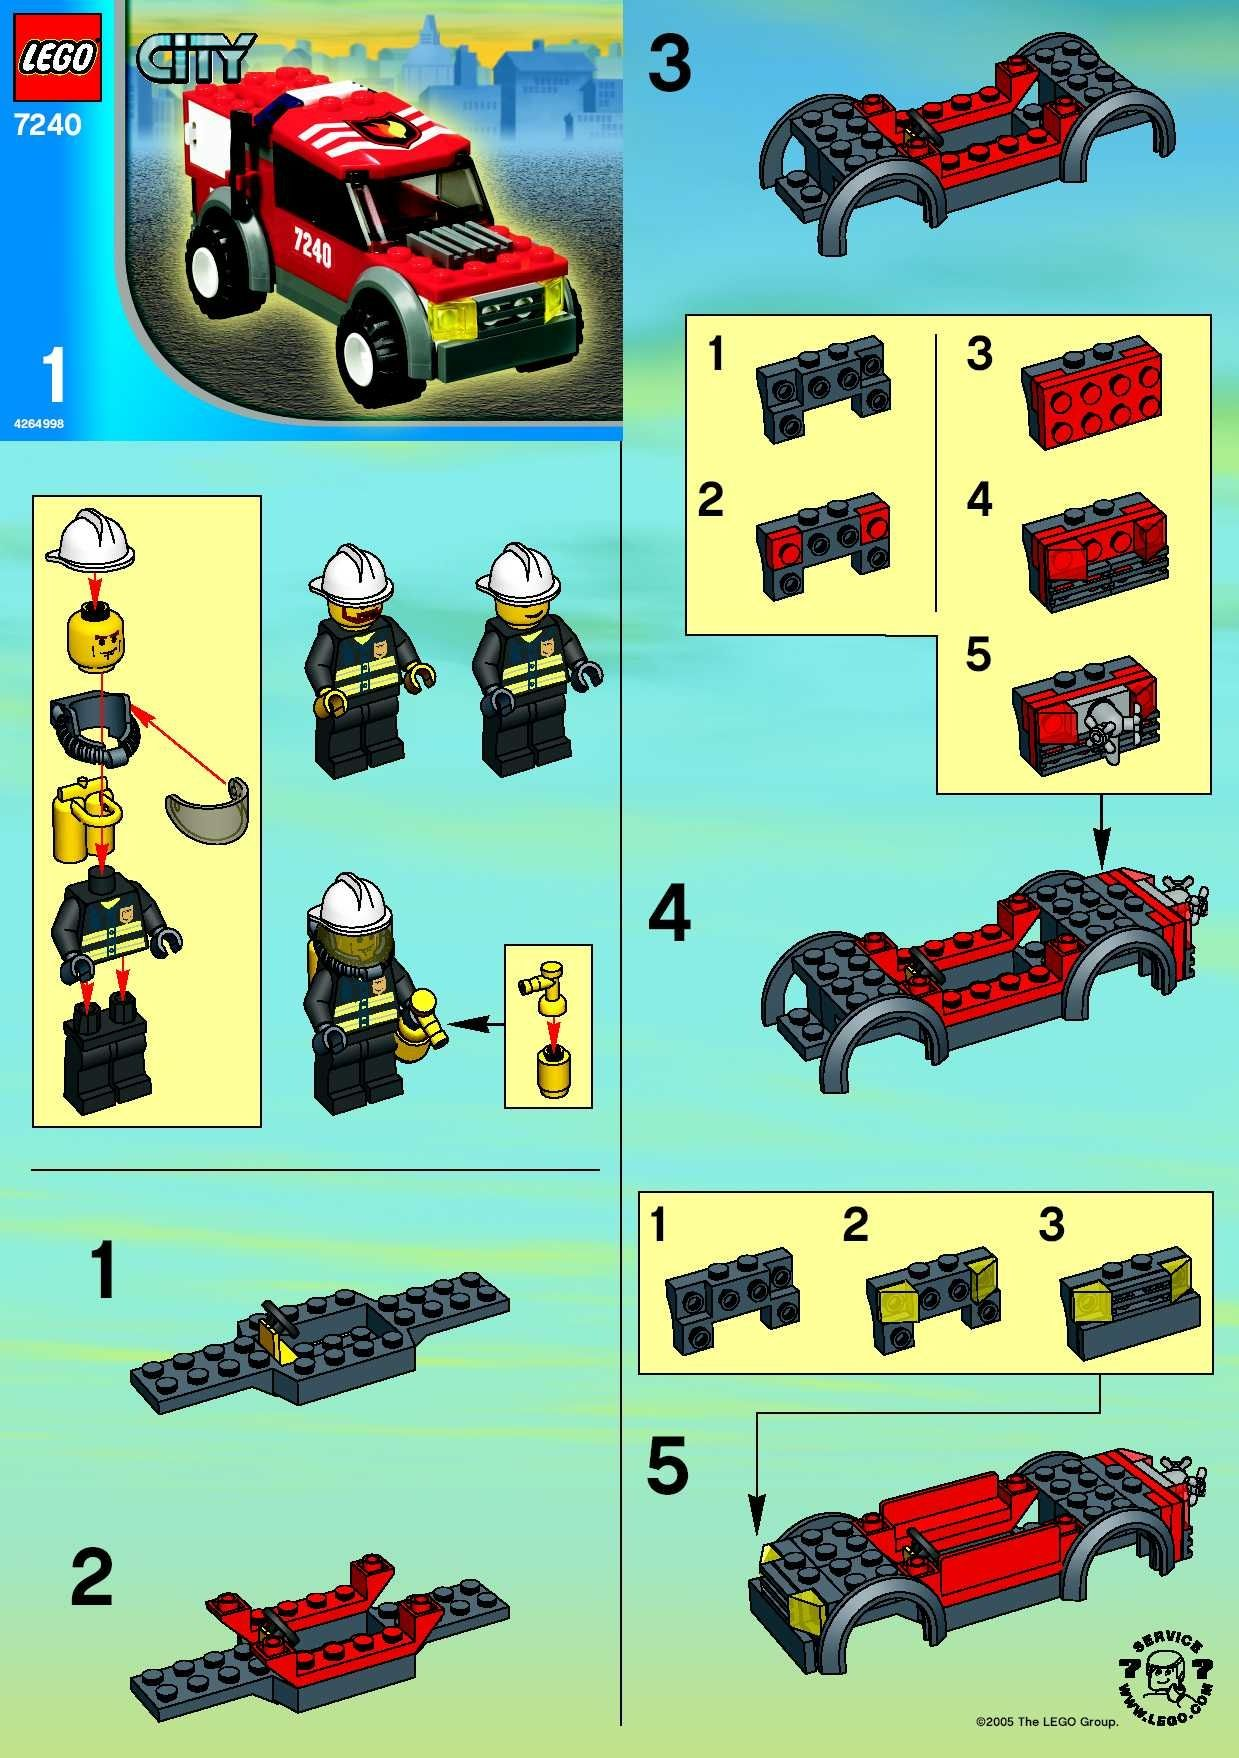 City Police Rescue Fire Headquarters Lego 7240 Lego Fire And